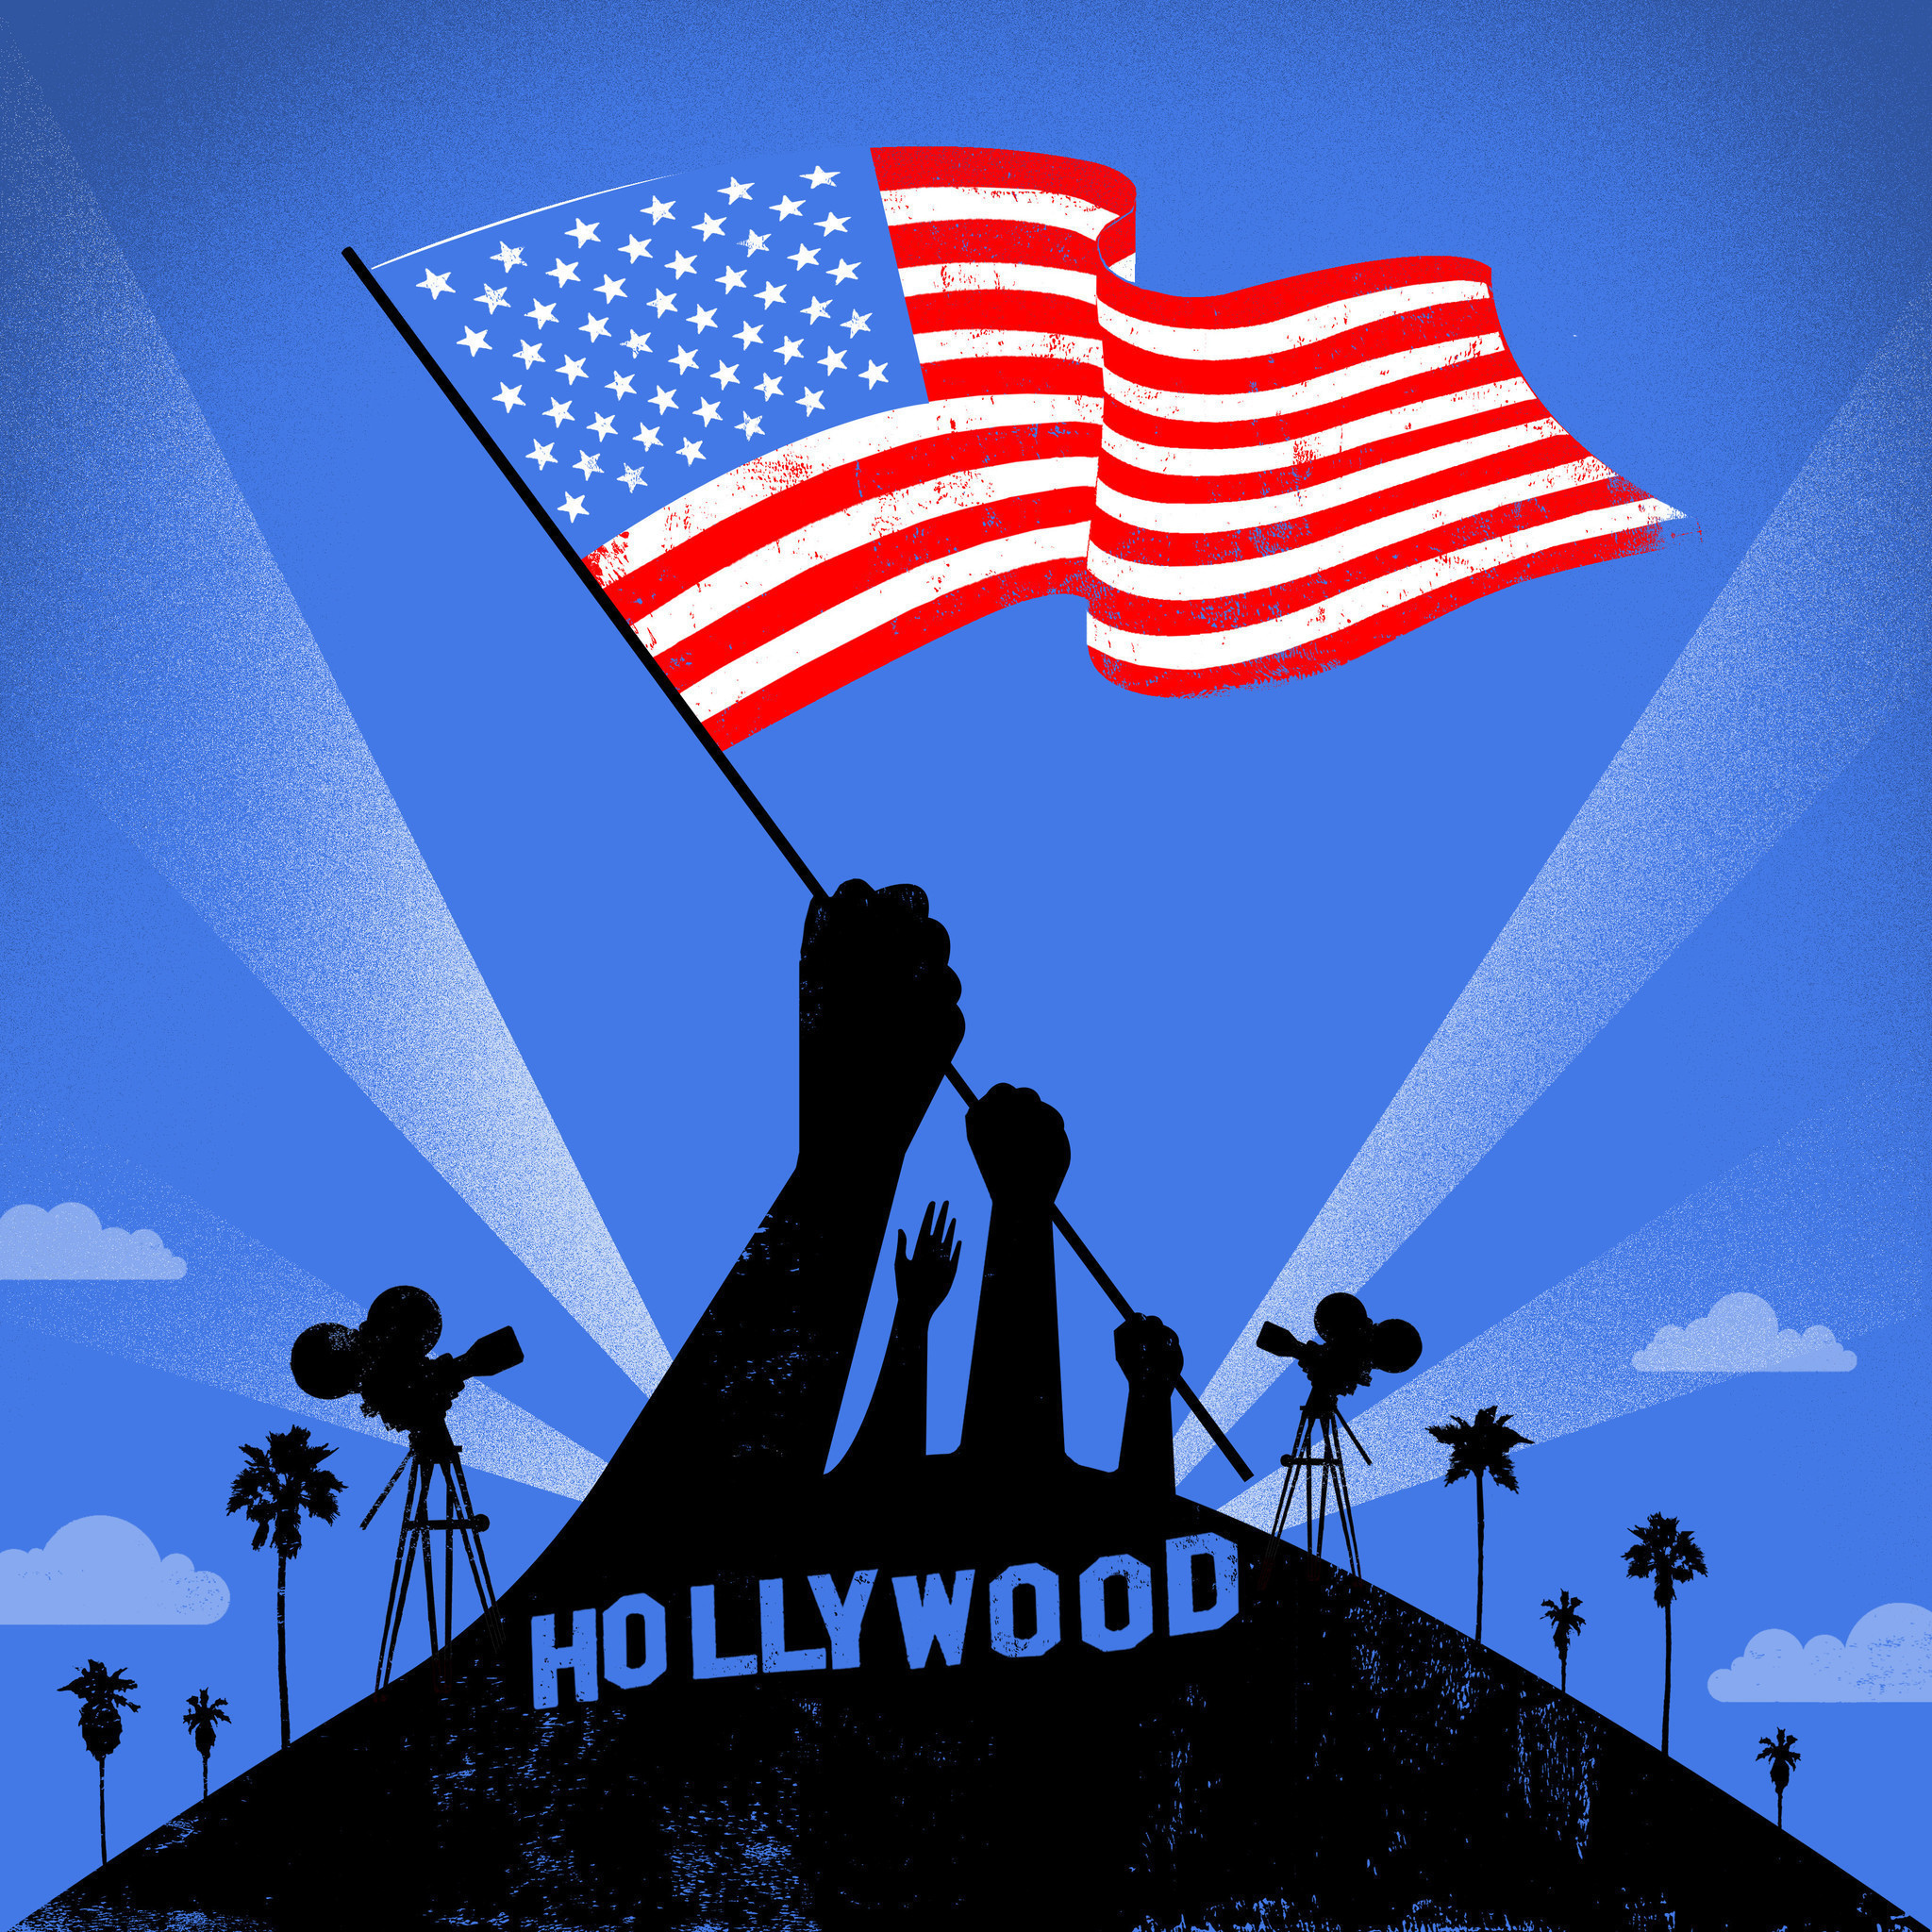 Hollywood And All That: Is Hollywood Out Of Touch With Your America?